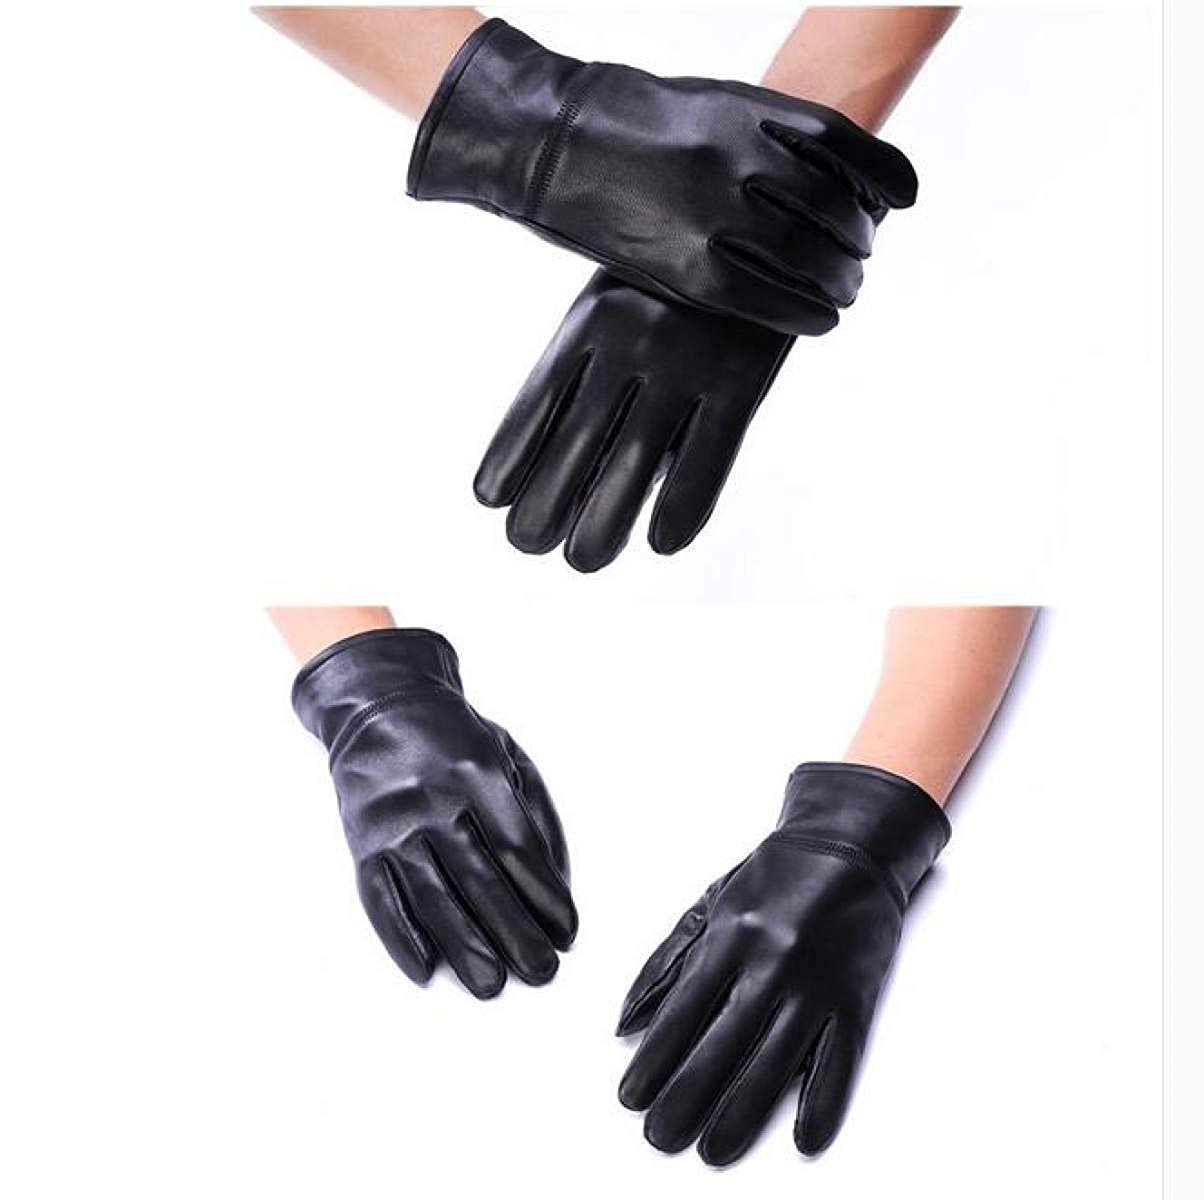 CWJ Gloves Ladies Ride Thicken Warm Autumn and Winter Men's Style,WomenBlack,Large by CWJ (Image #5)